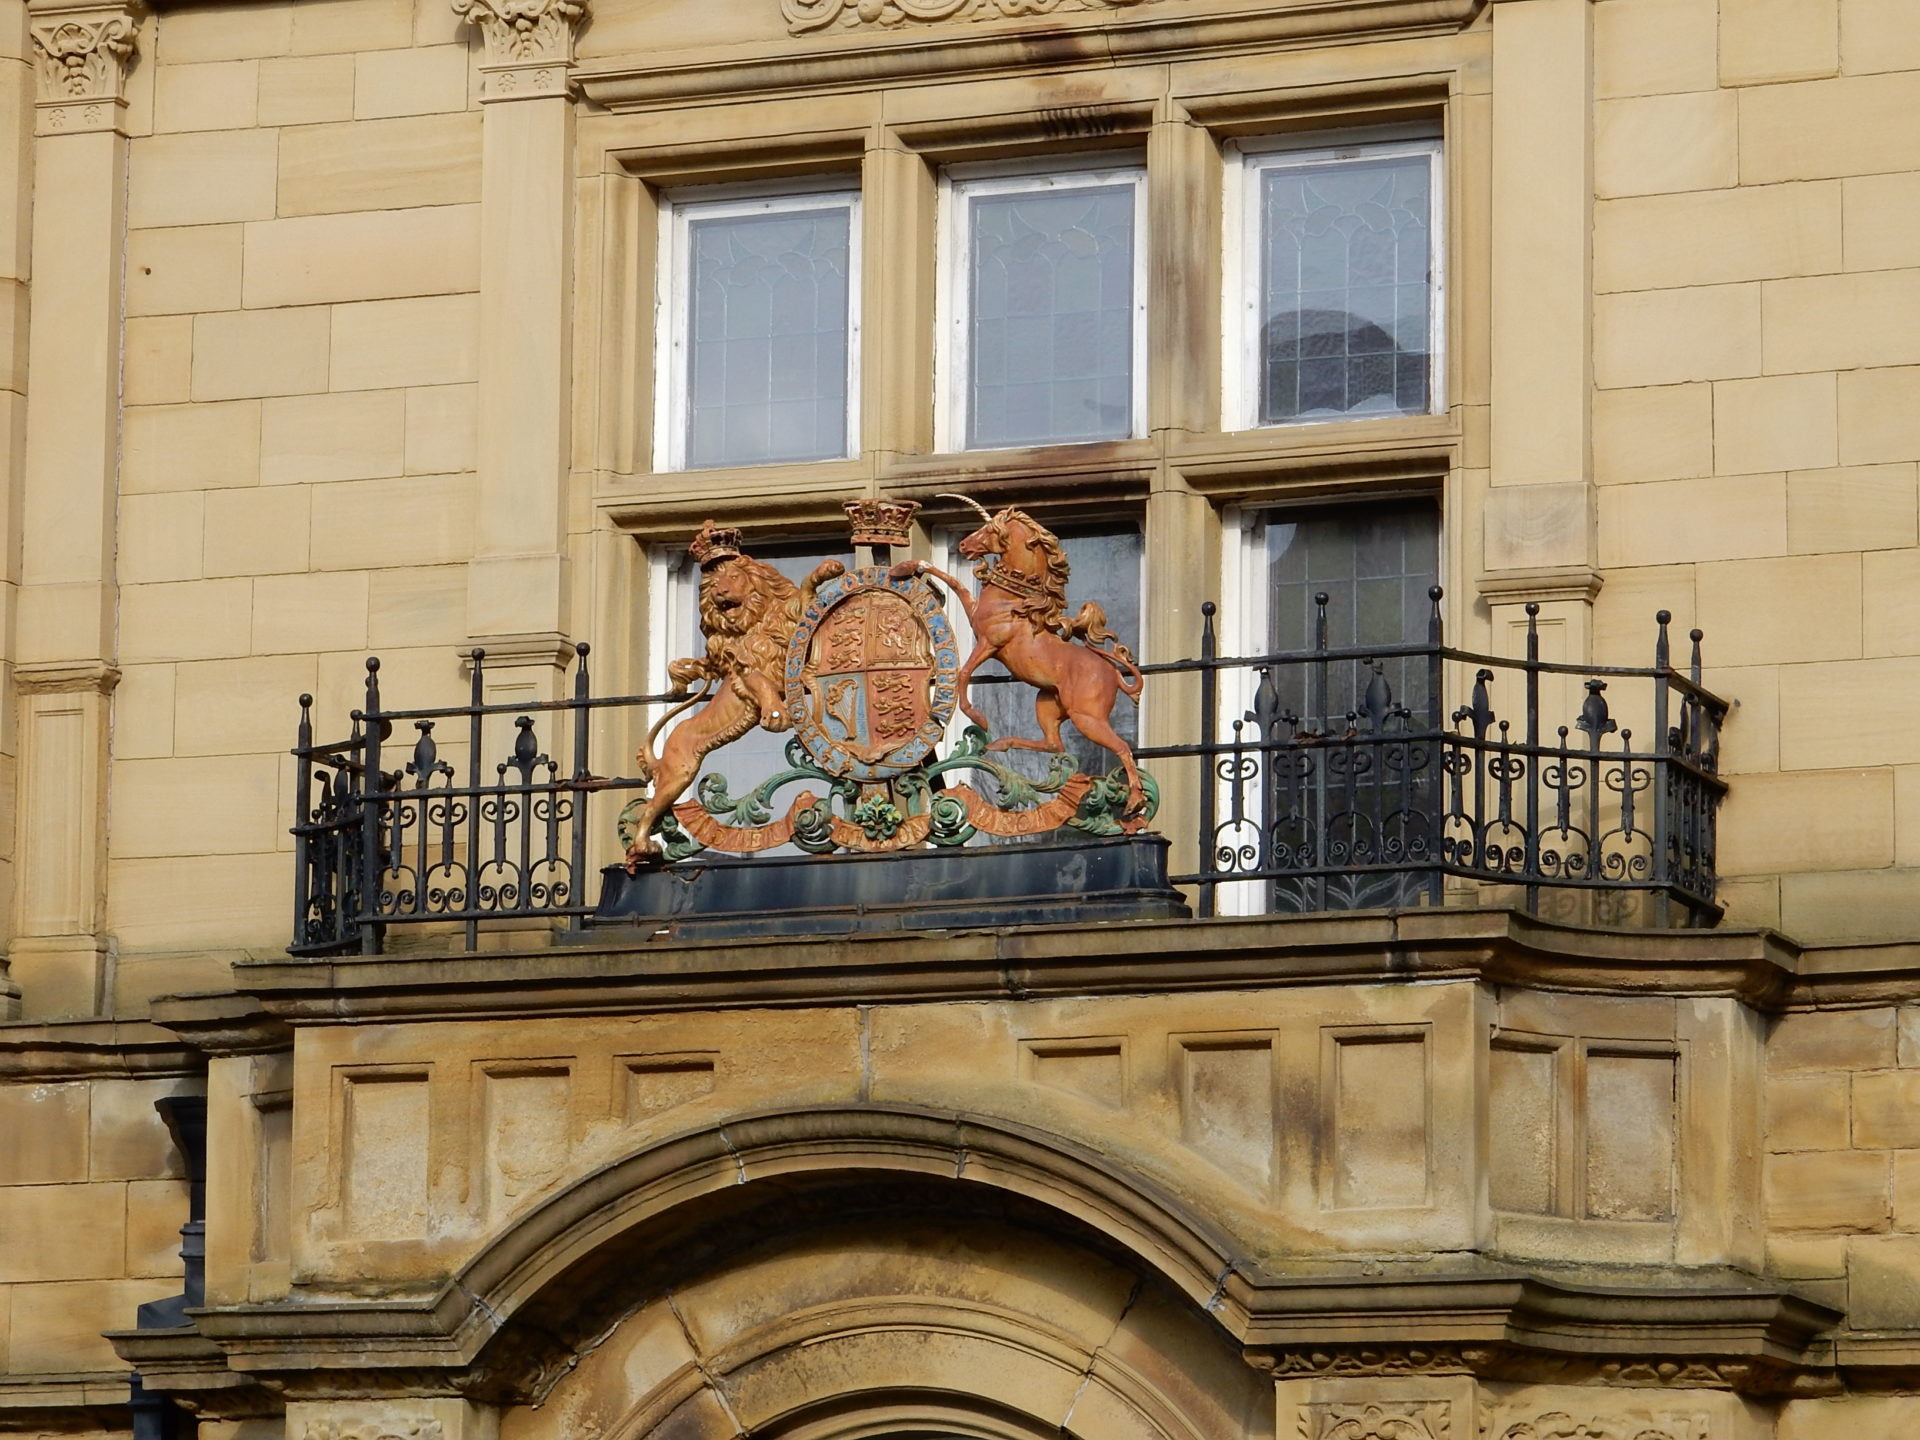 Halifax Magistrates' Court Crest